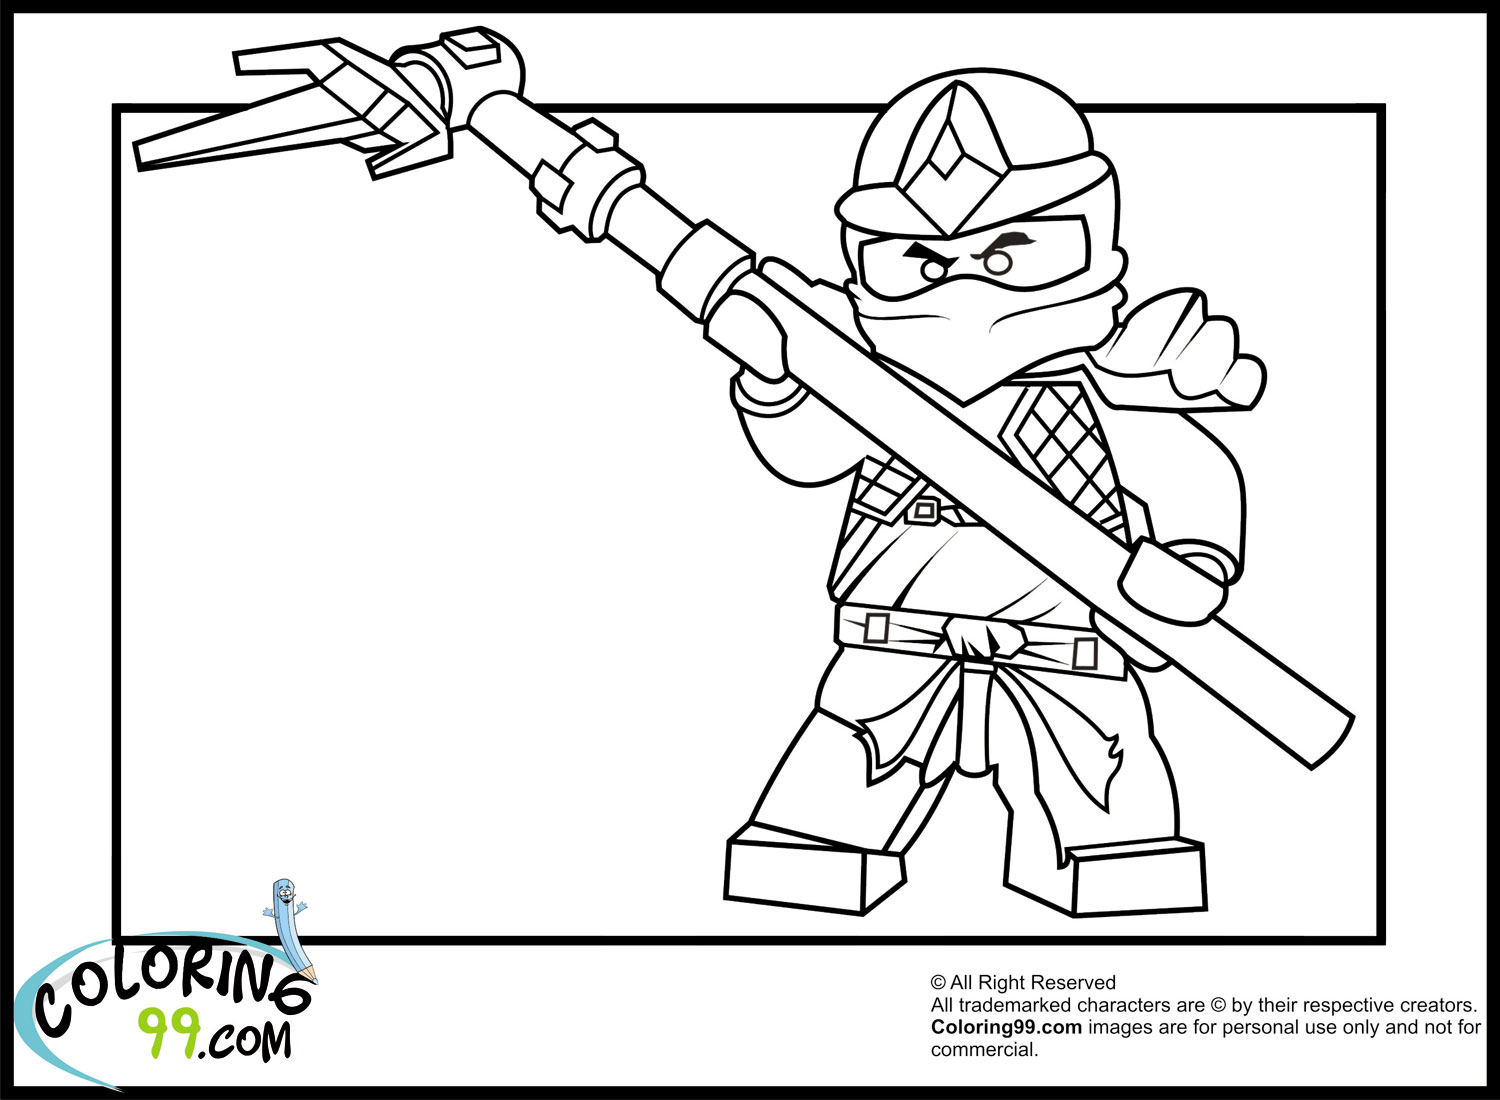 Lego Ninjago Coloring Pages Jay 14 Image Colorings